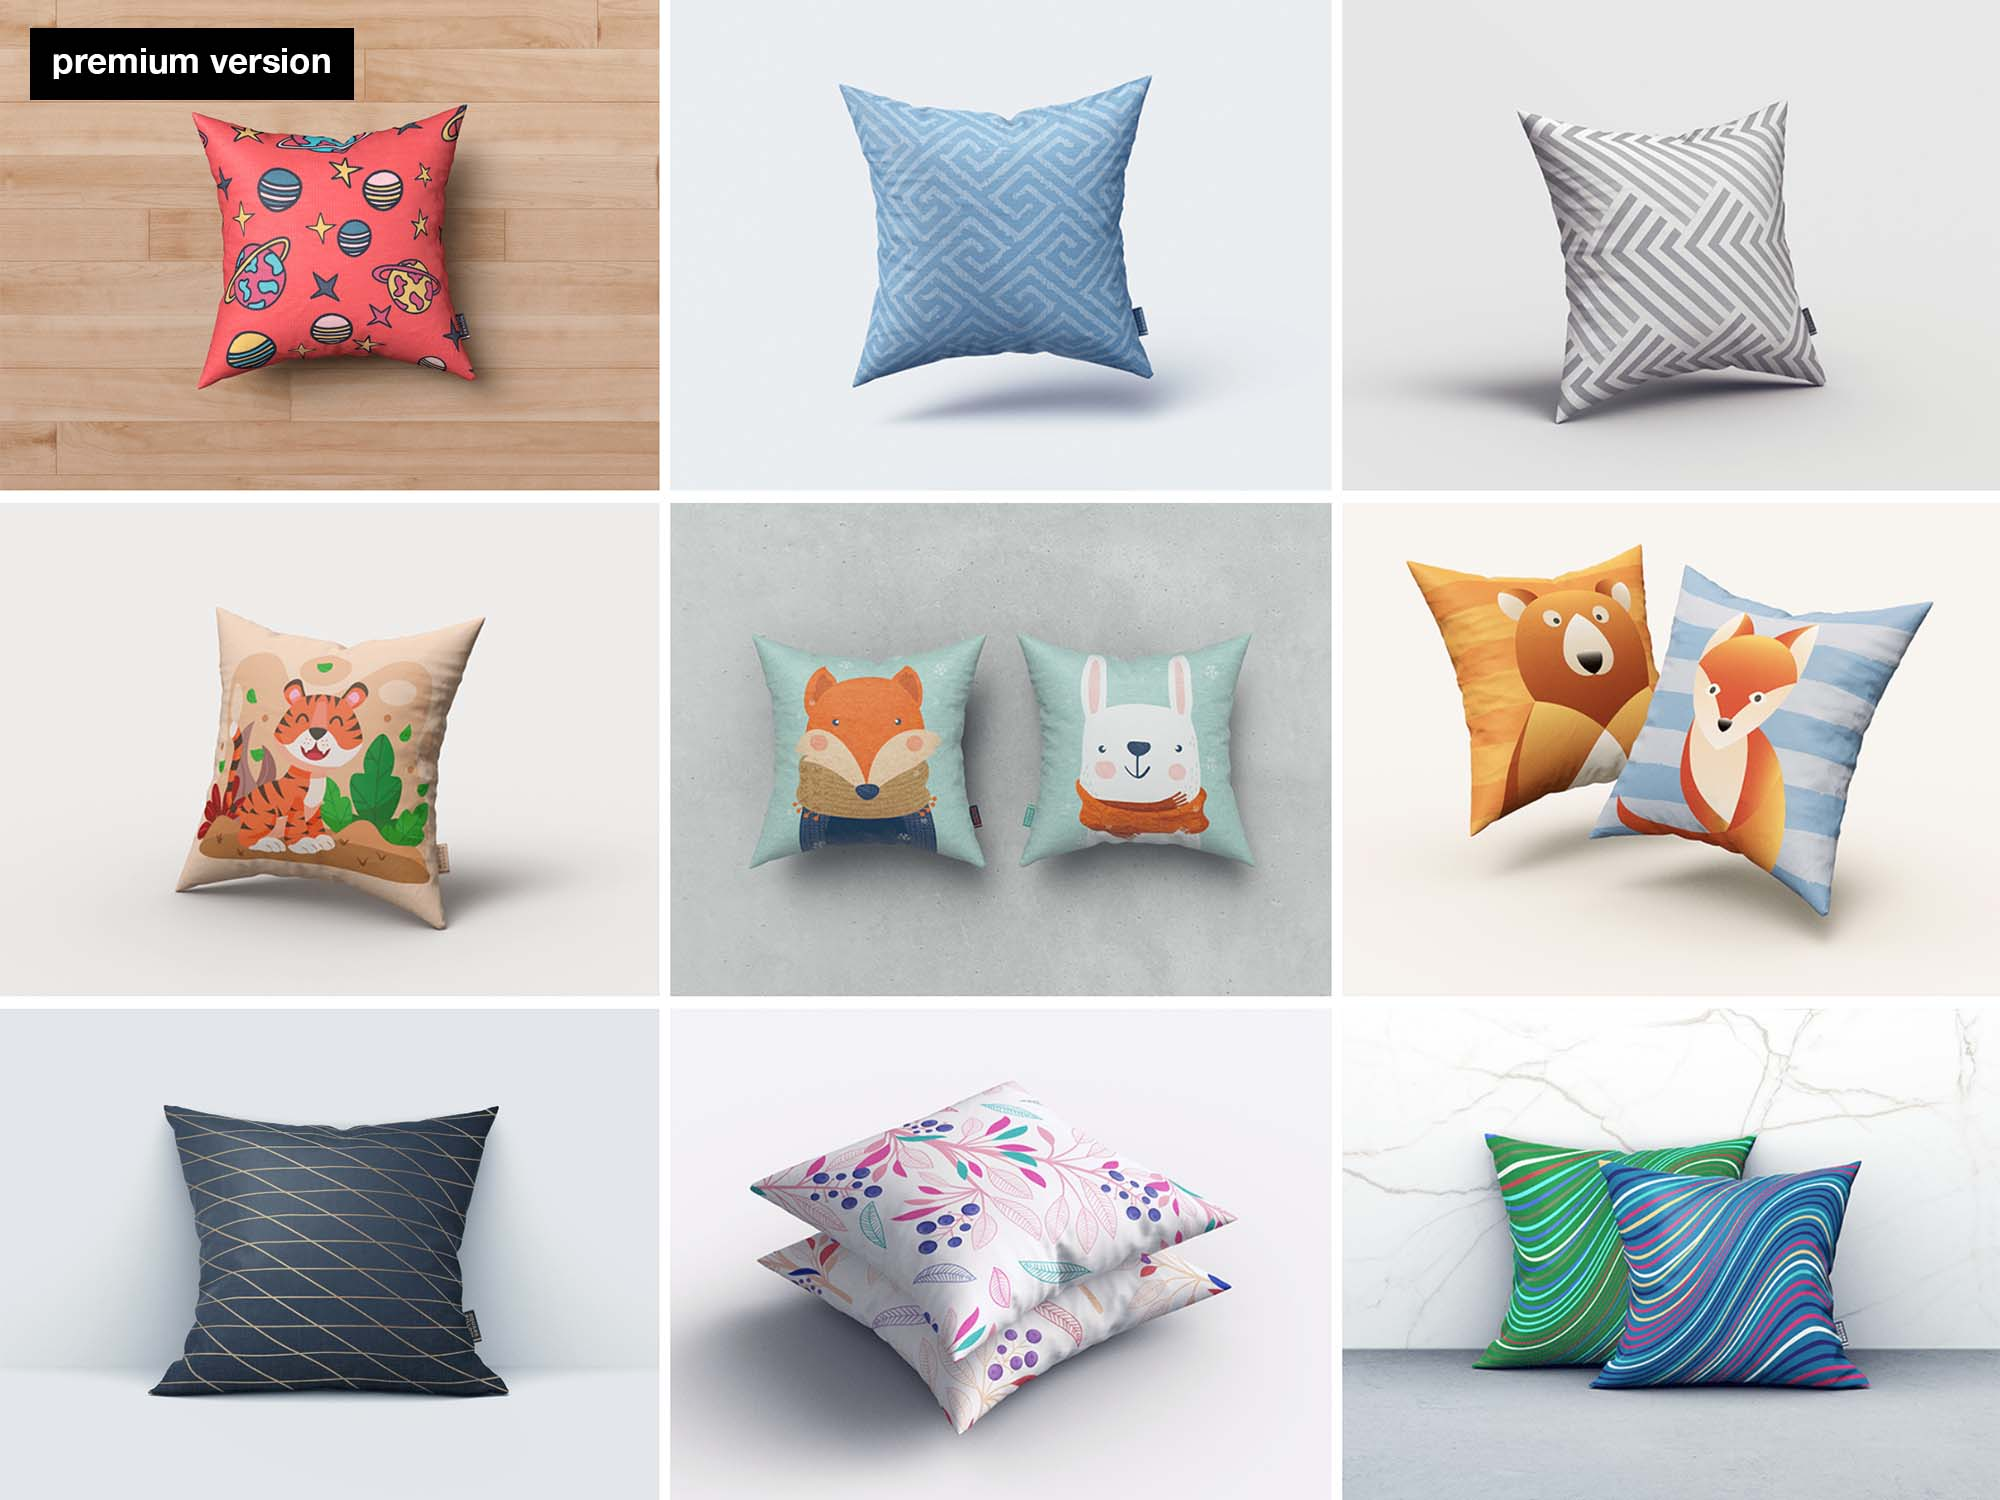 Square Pillow Mockups - Premium Version